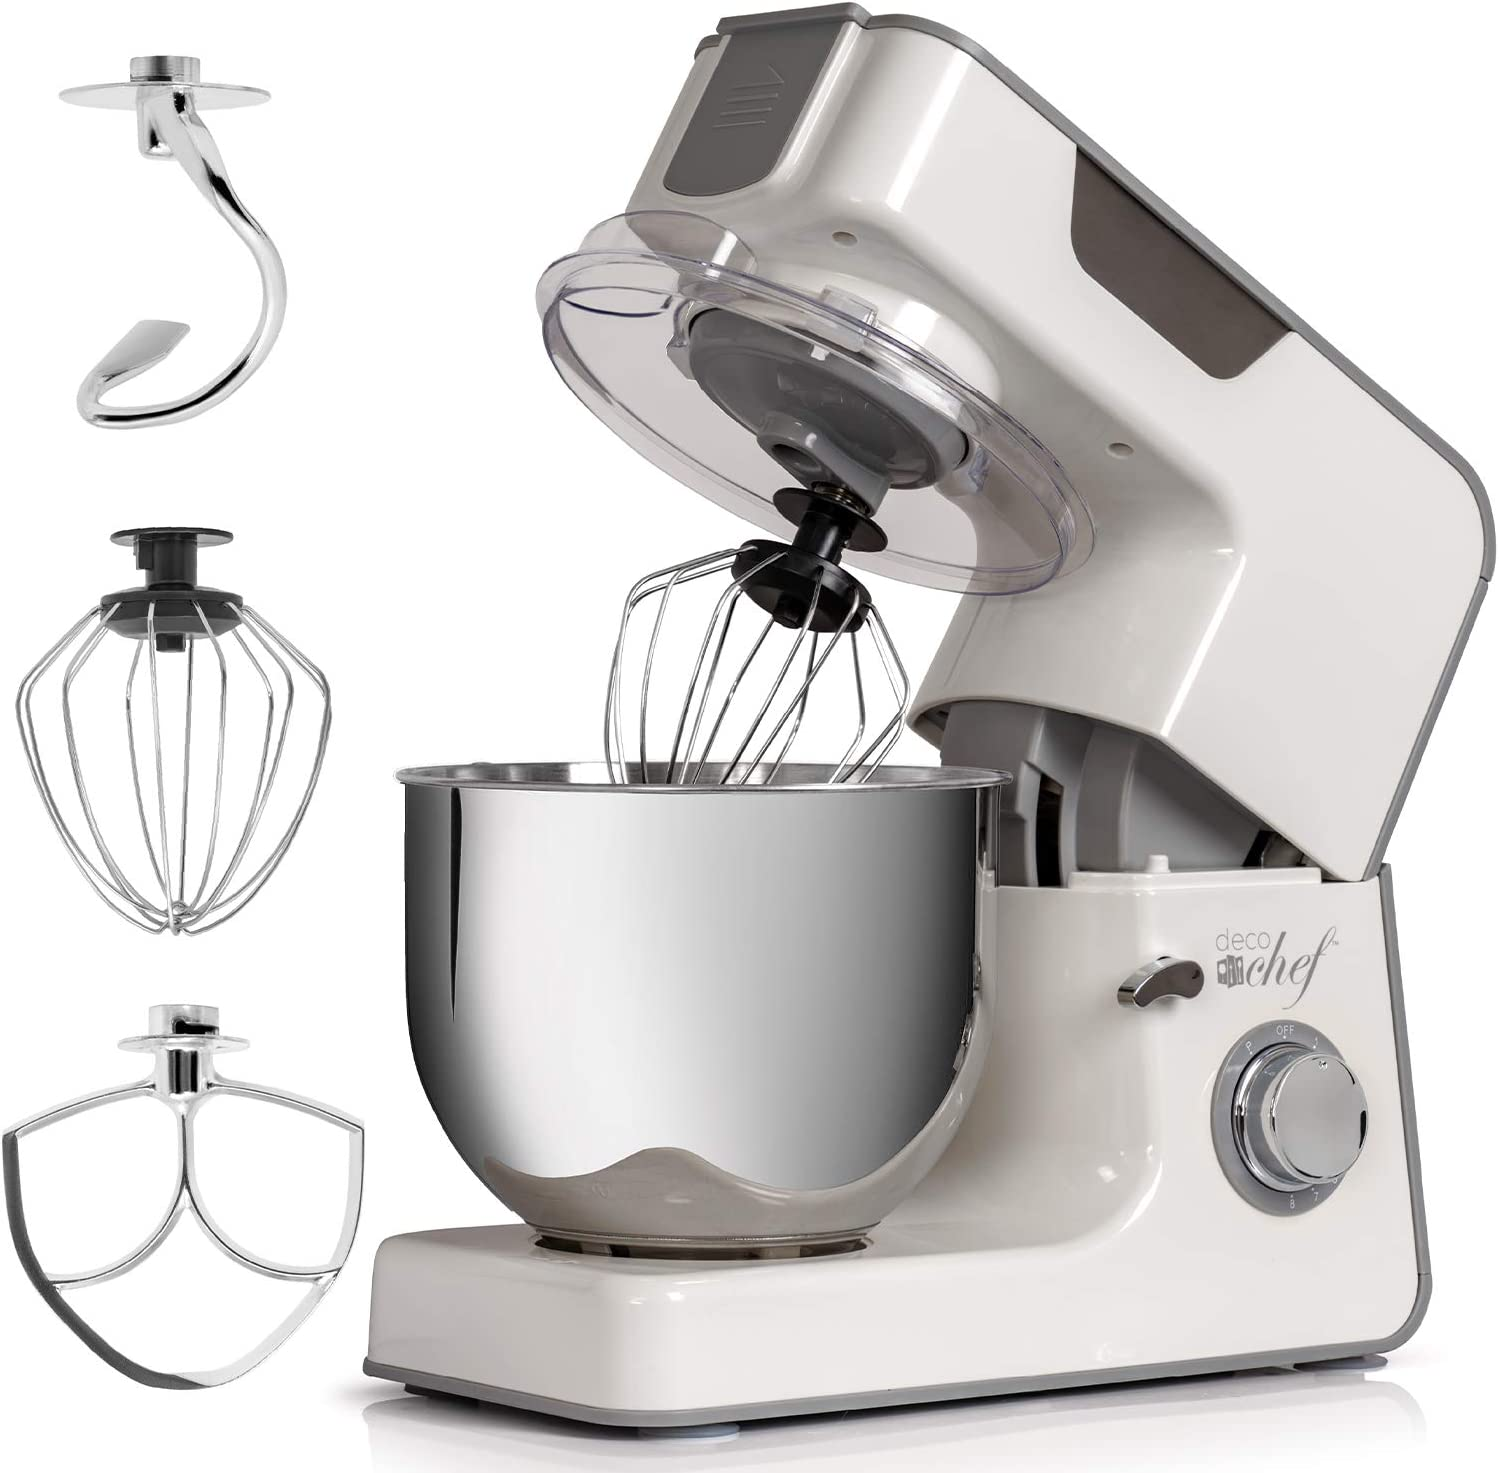 Deco Chef 5.5 QT Kitchen Stand Mixer, 550W 8-Speed Motor with Pu